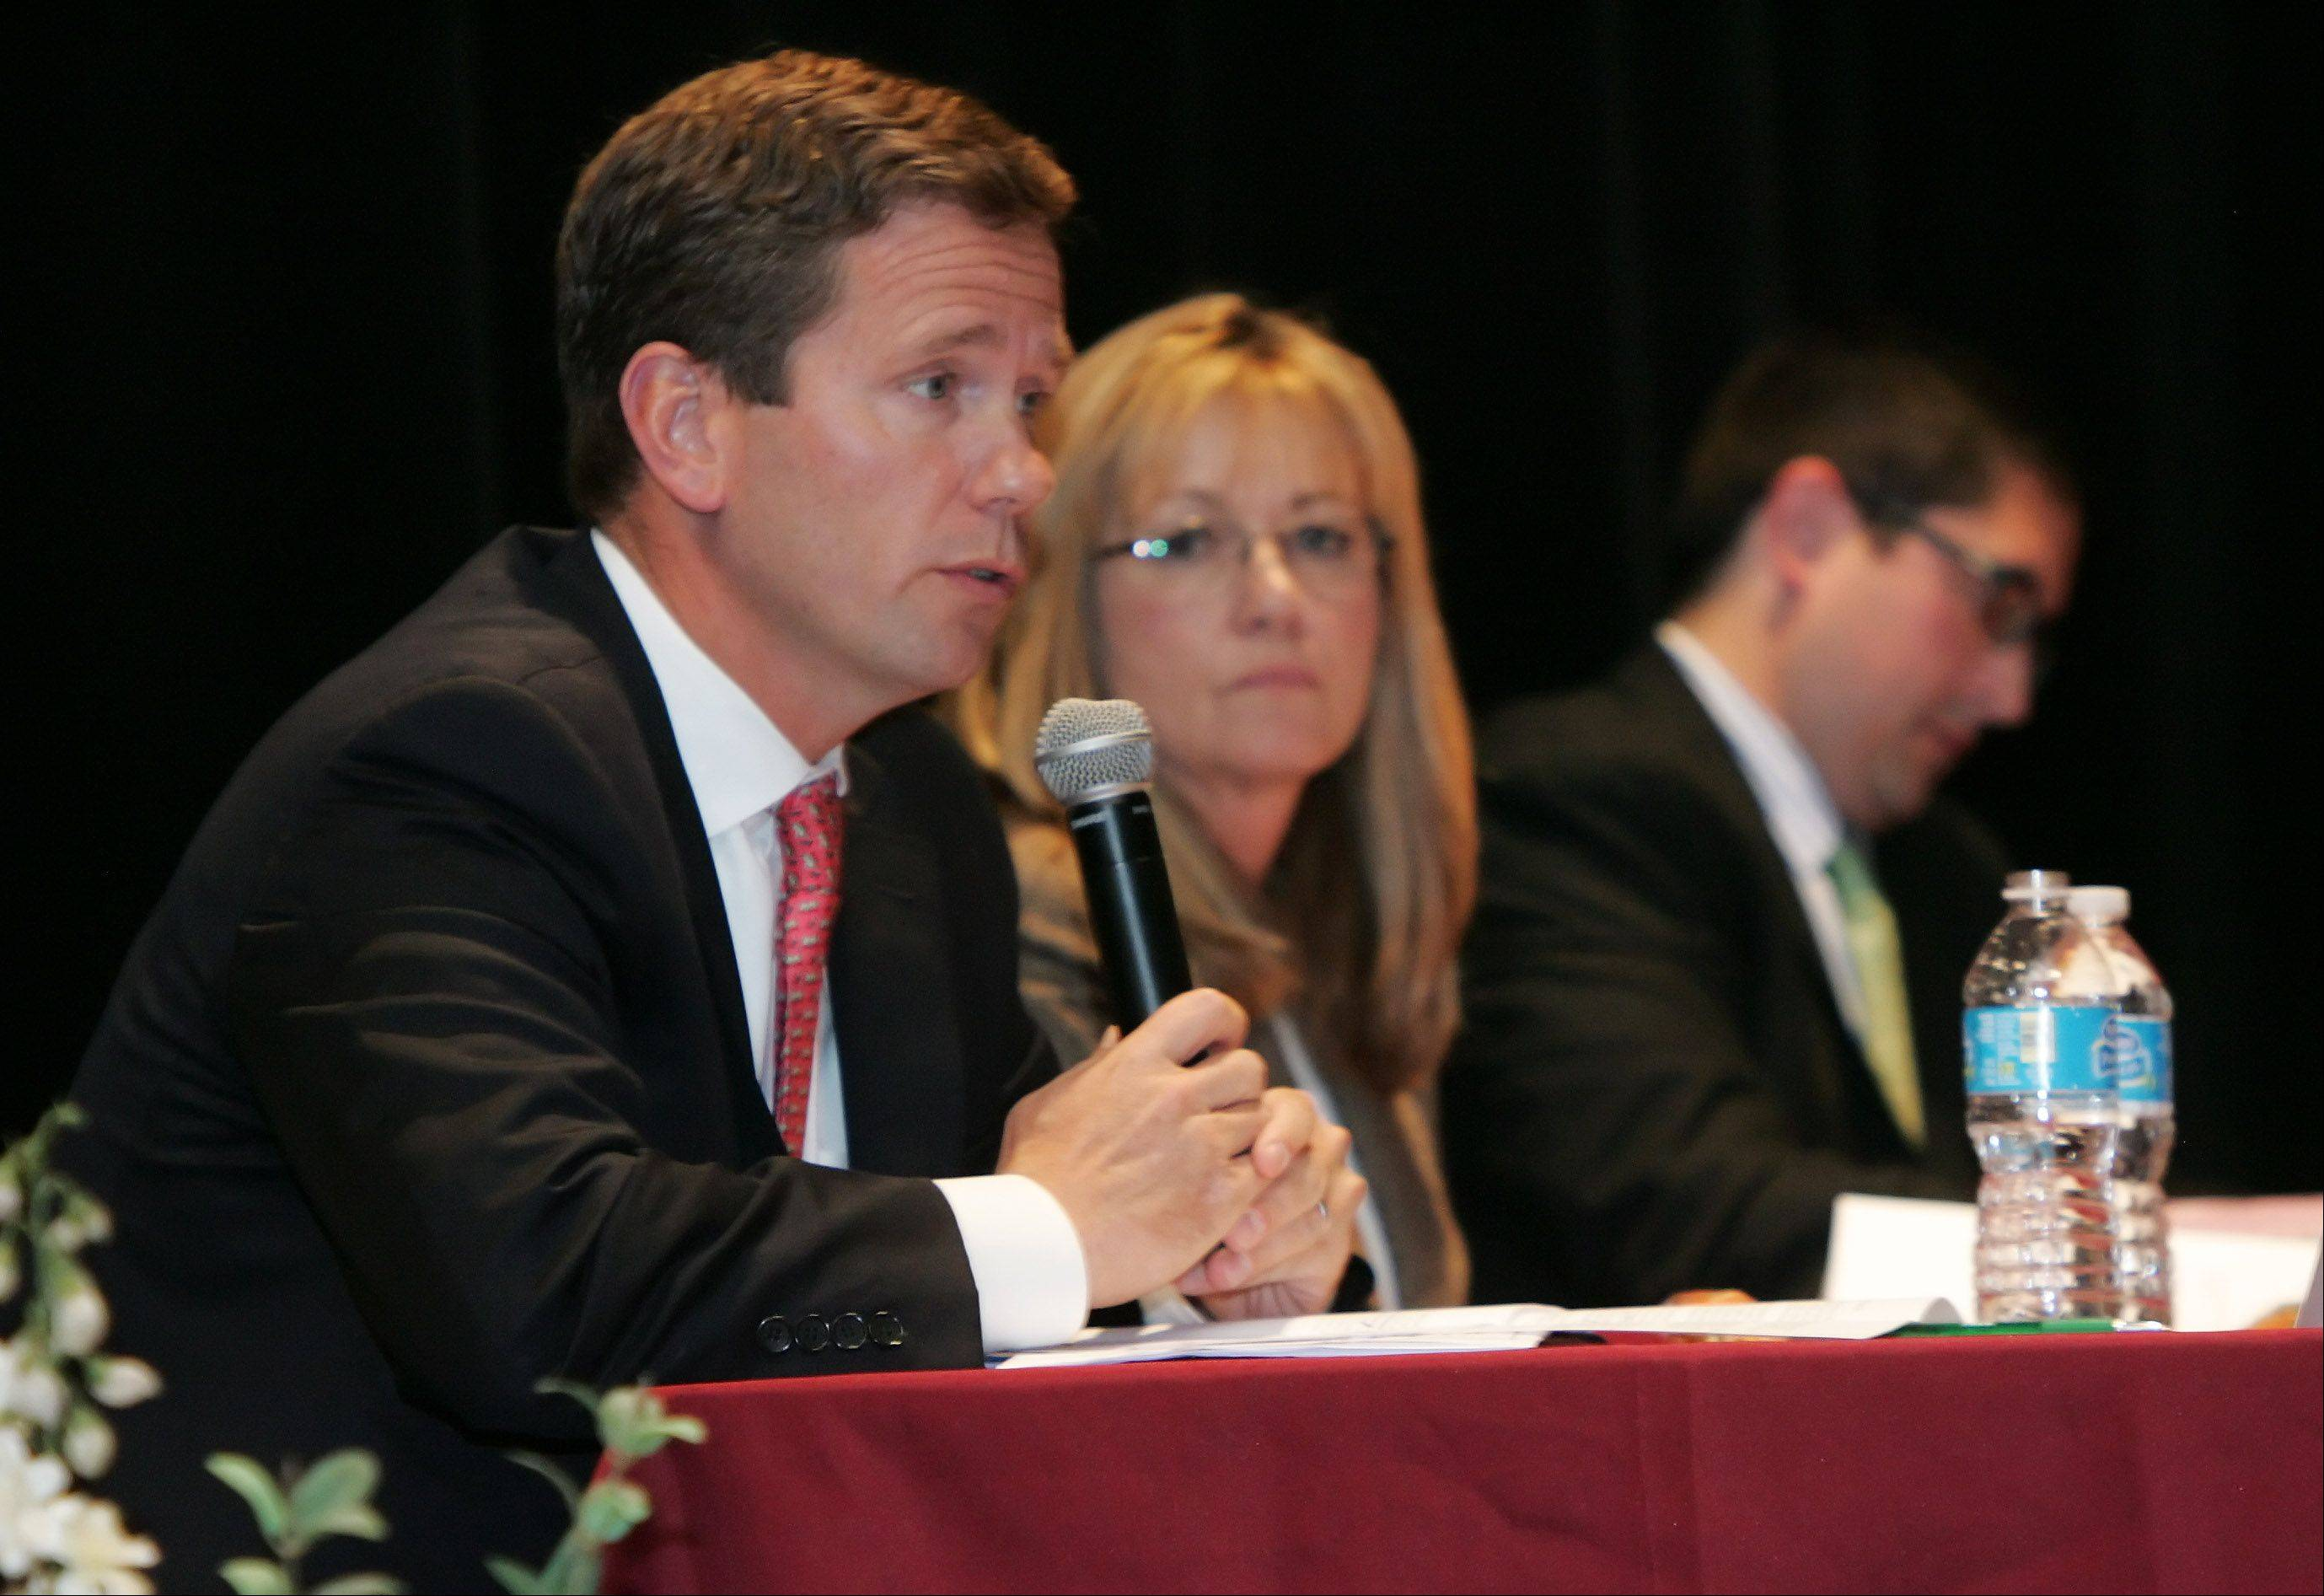 U.S. Congressman Robert Dold addresses the audience about the 10th Congressional District election during the candidate forum Sunday at the Round Lake Beach Cultural & Civic Center. The event was sponsored by the League of Women Voters and the Round Lake Area Public Library. To his right are Melinda Bush, candidate for the 31st state Senate seat, and Sam Yingling, who is running for the 62nd state House seat.